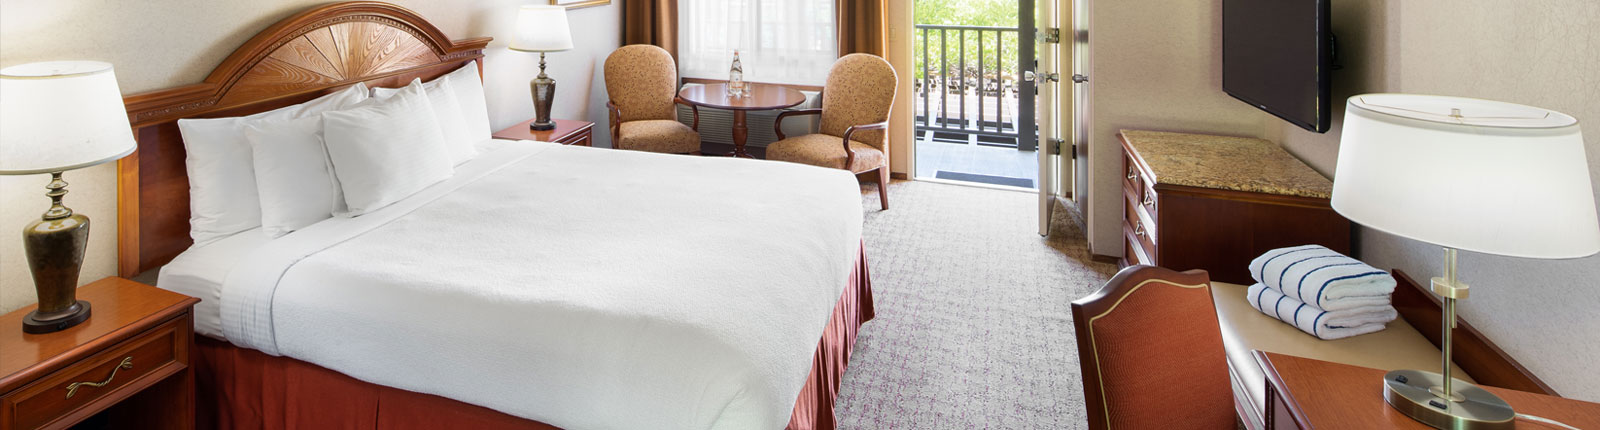 Classico Rooms at Roman Spa Calistoga